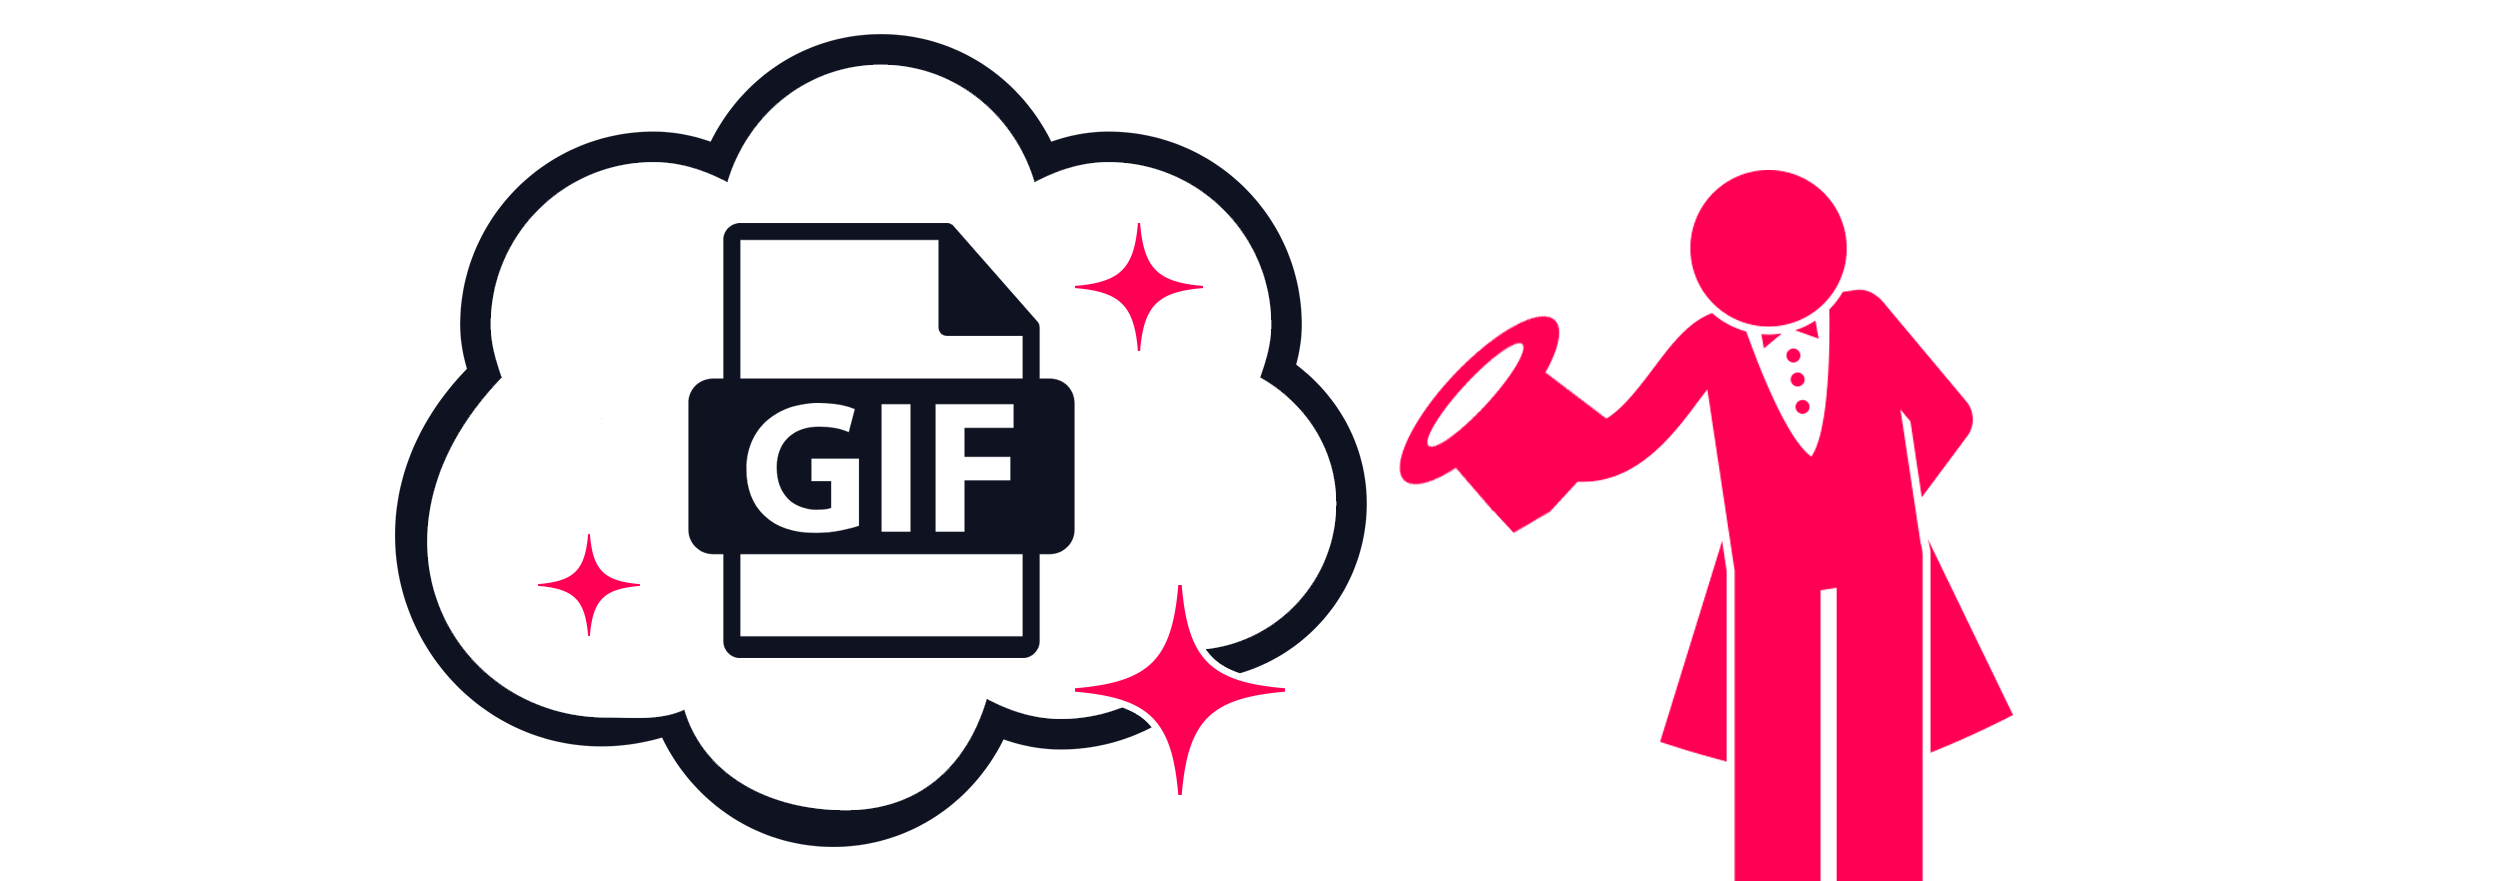 how to make animated gif without photoshop